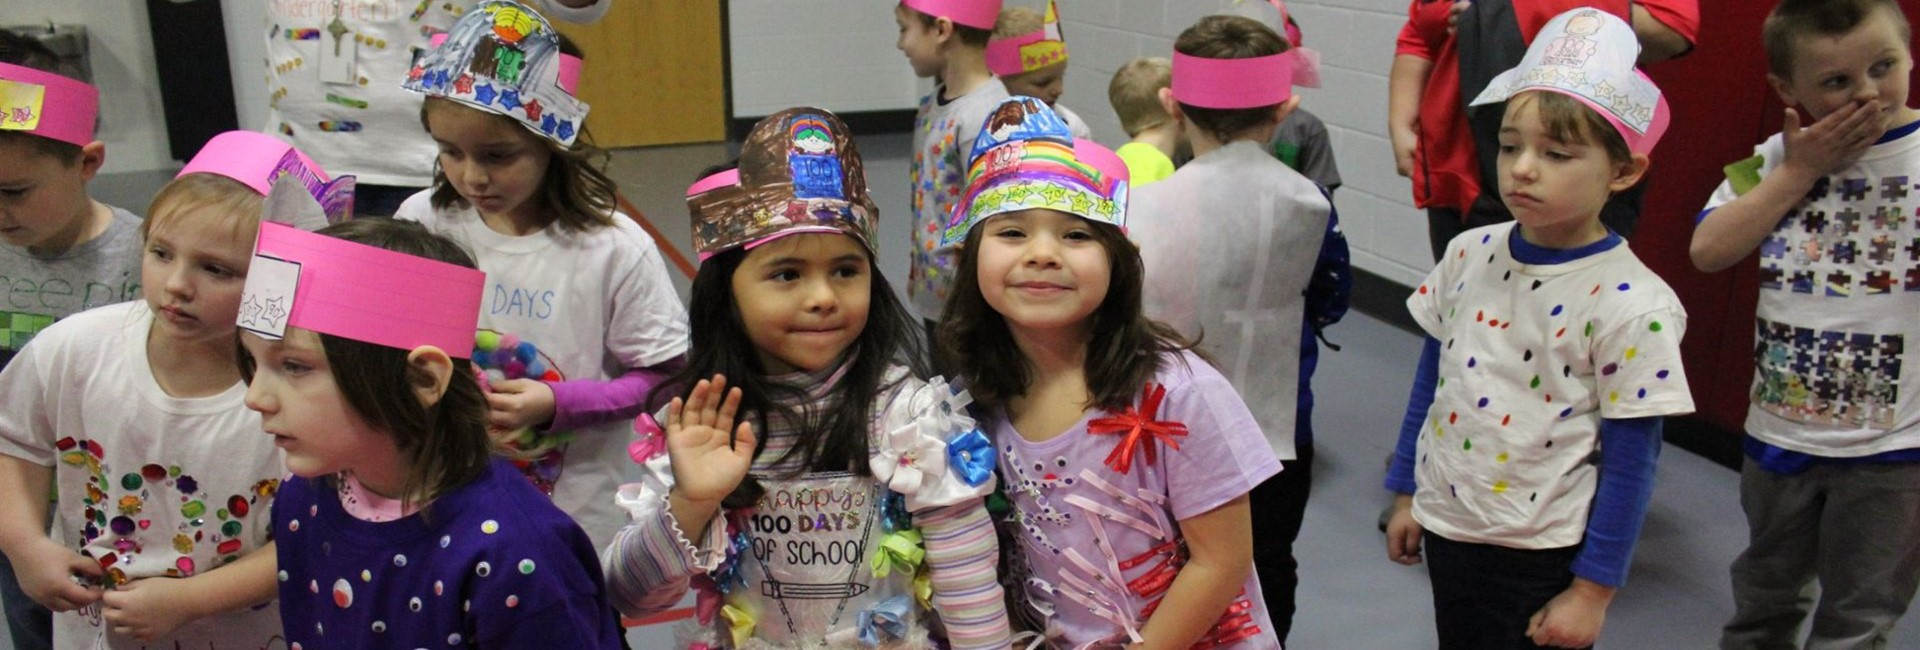 WES 100th Day of School Fashion Show